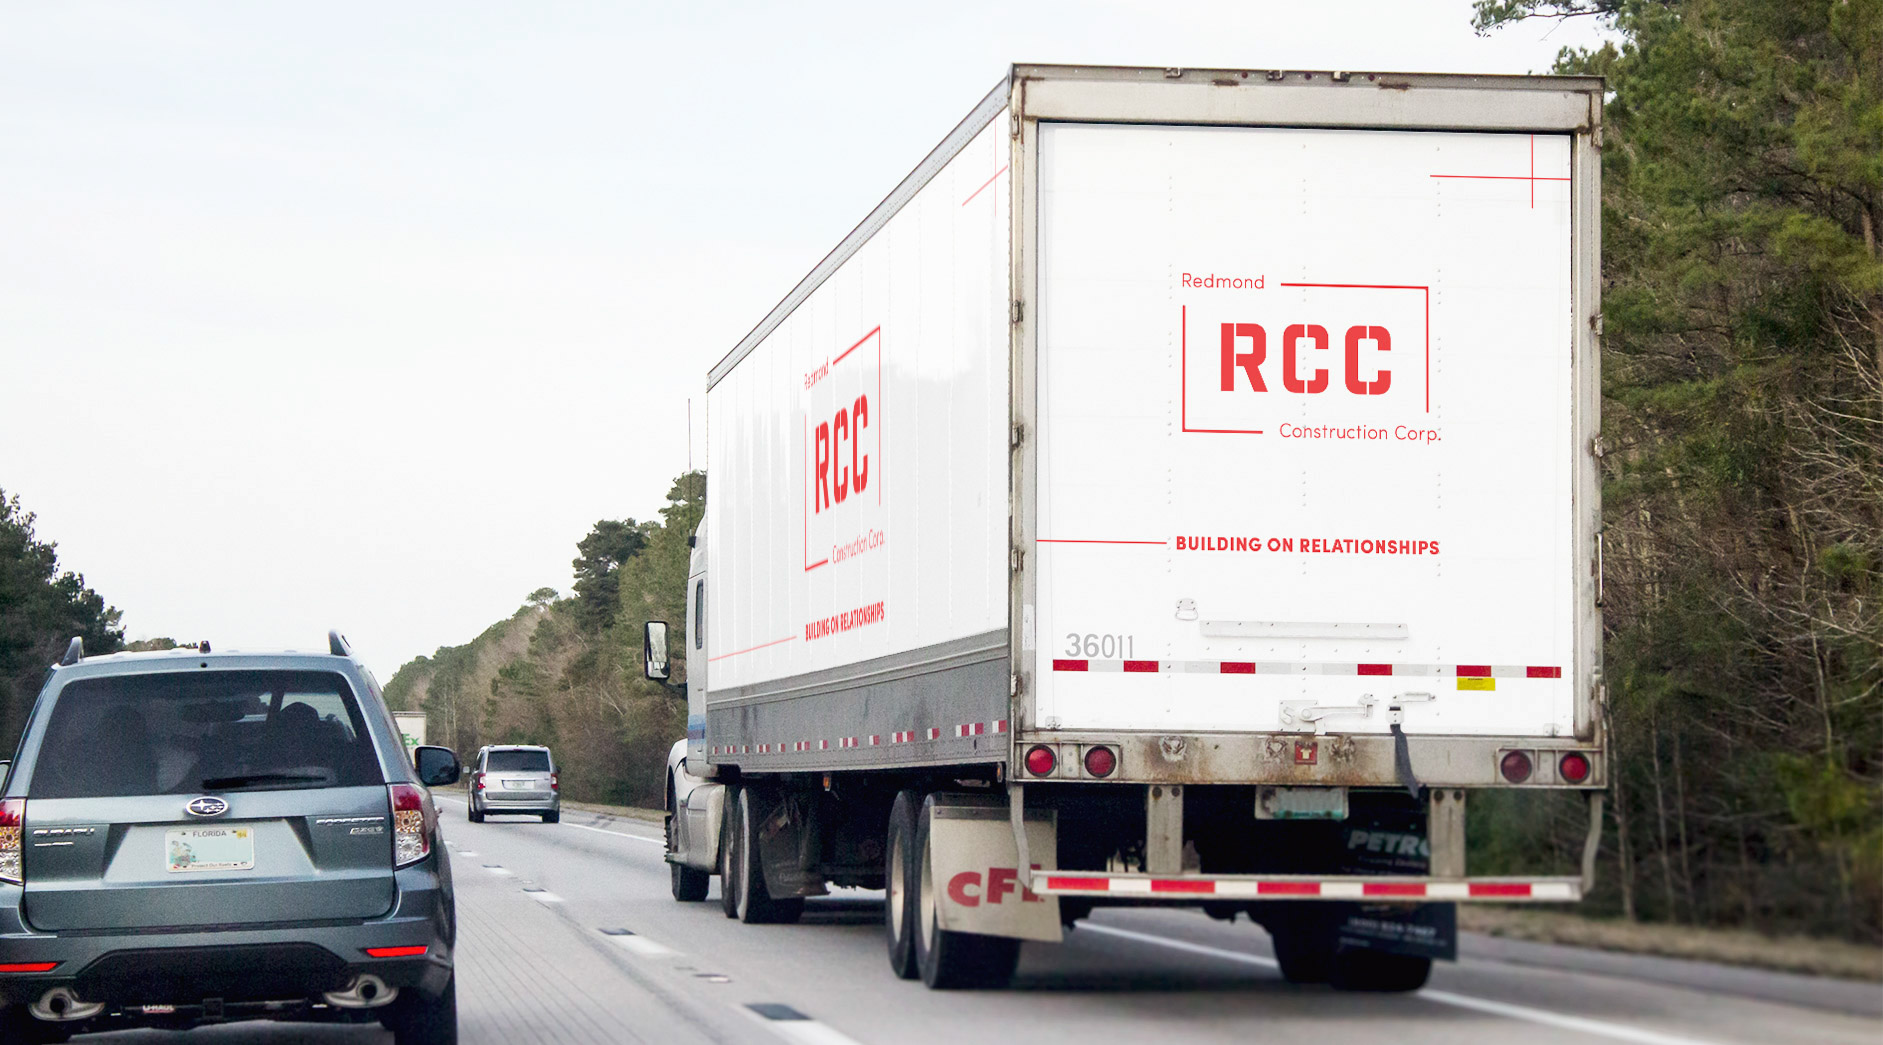 This shows a mockup of a semi-truck with RCC's branding.